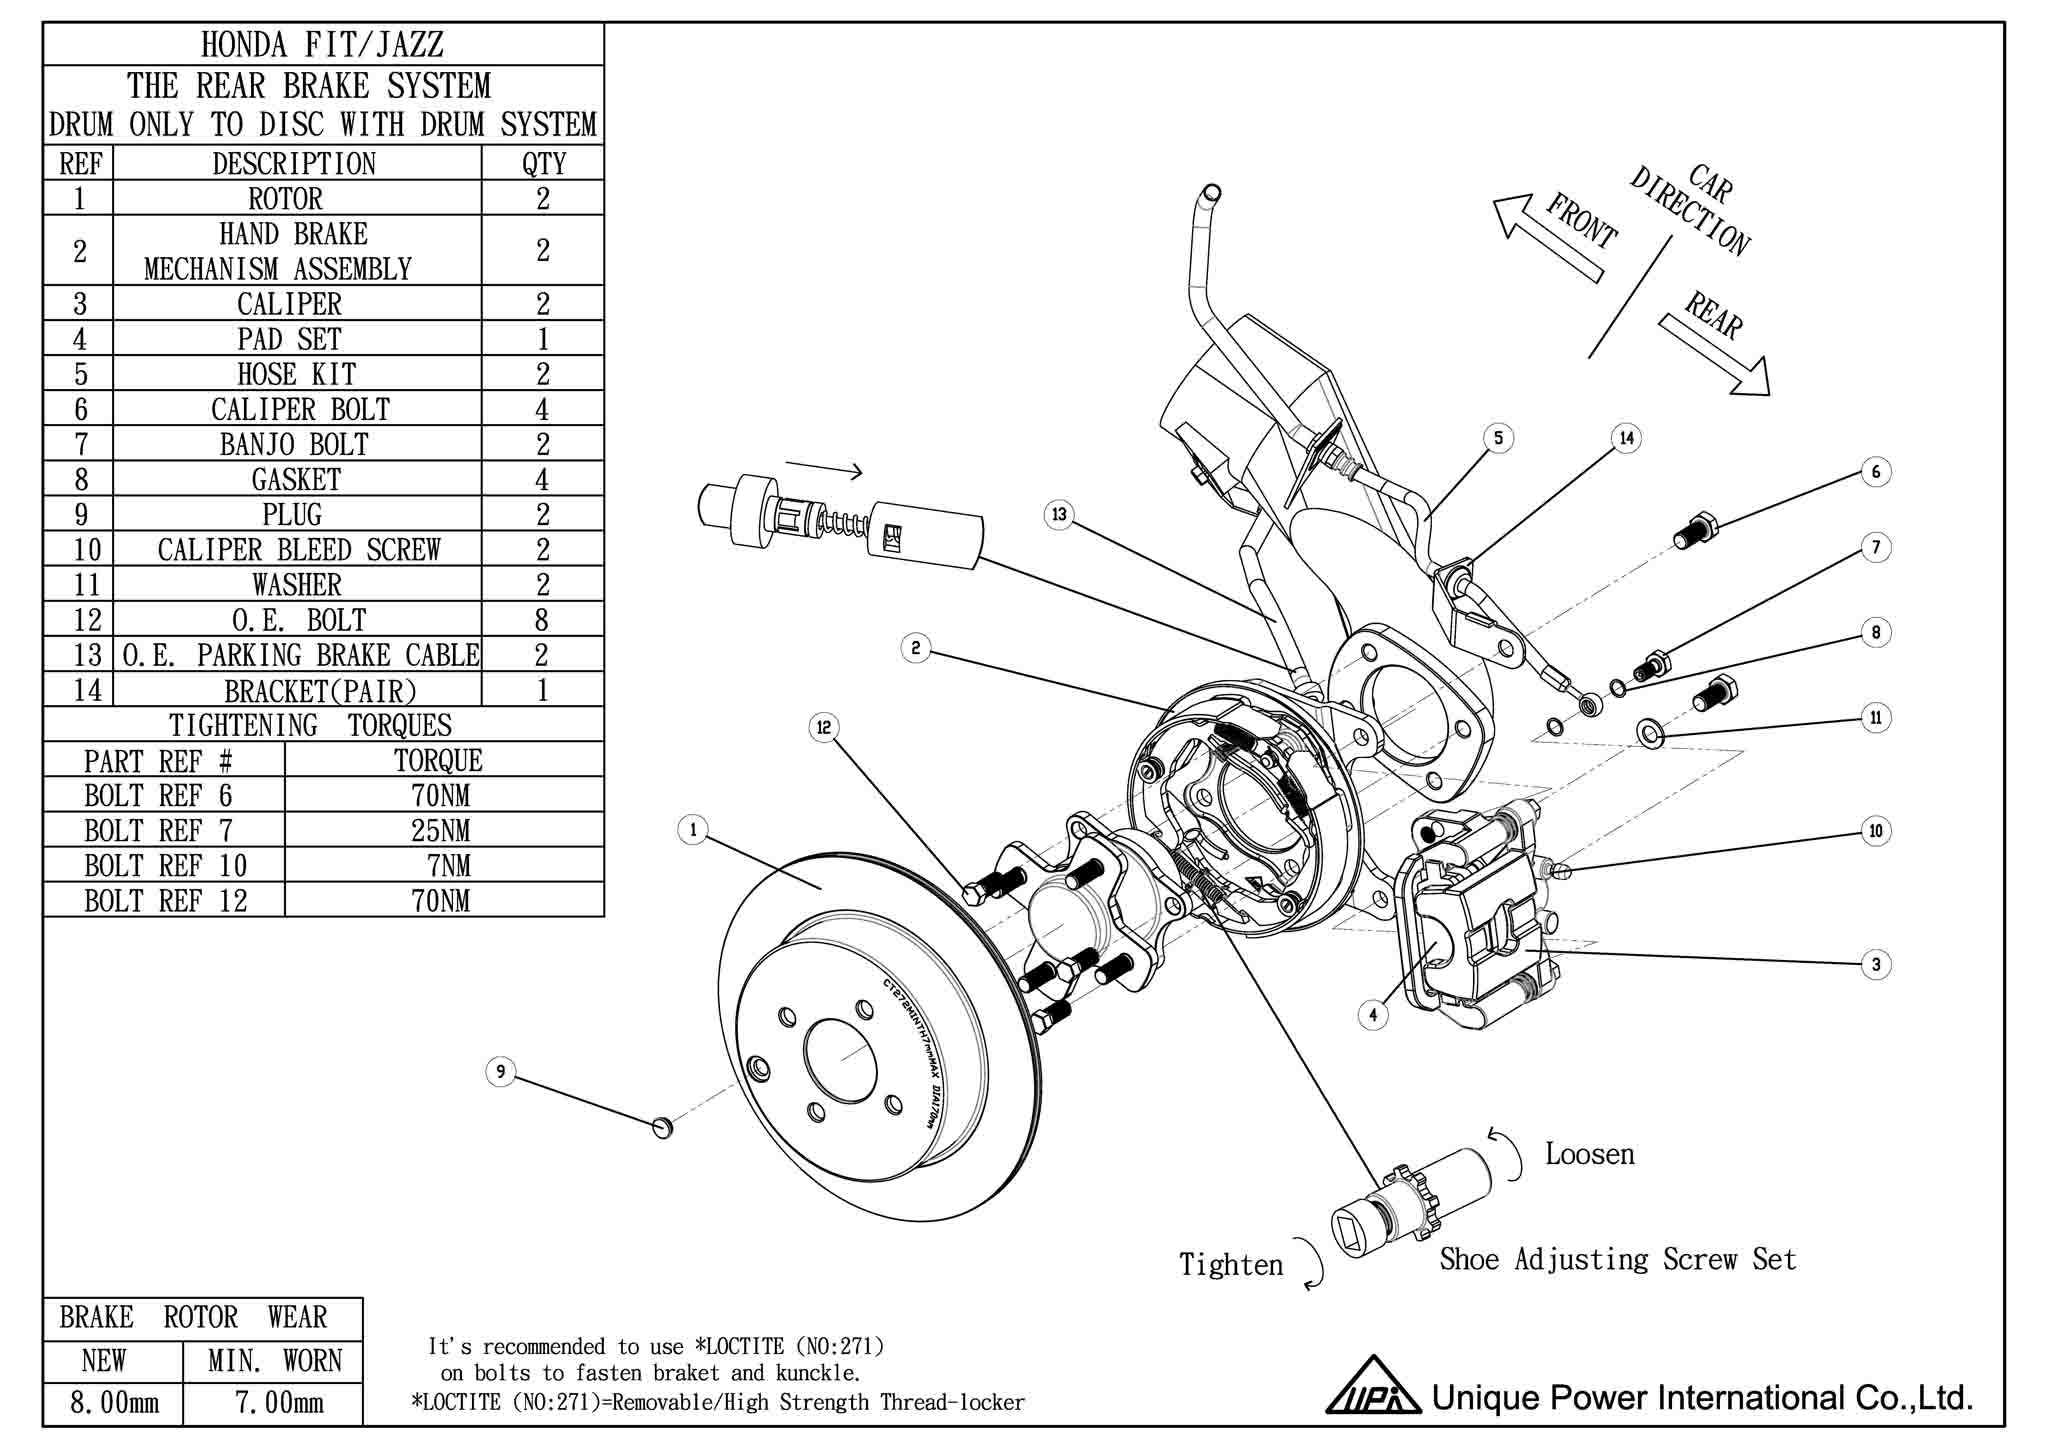 Honda Fit Jazz Rear Drum To Disc Installation Guide